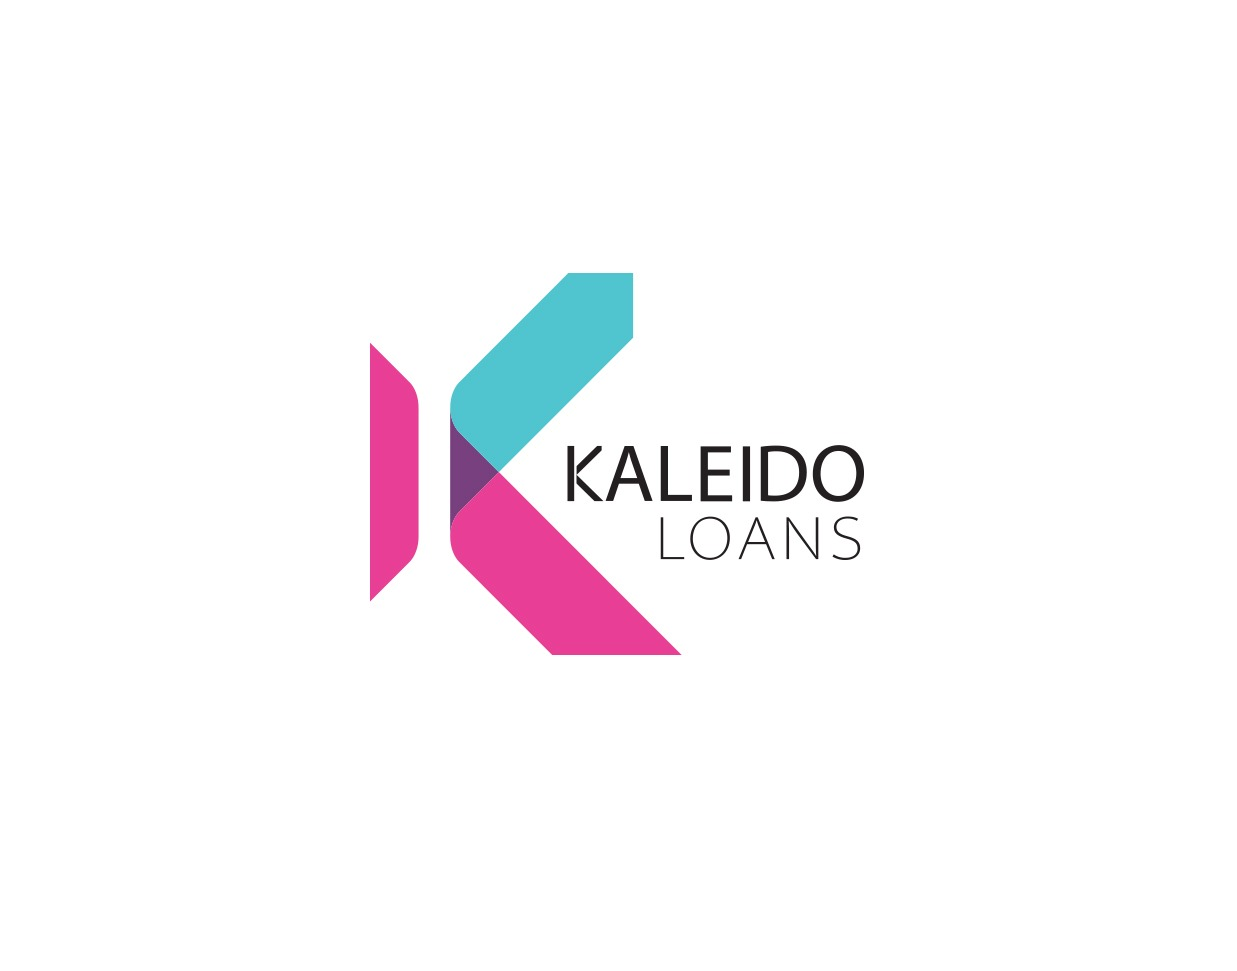 Kaleido Loans is a Leading Finance and Mortgage Broker in North Strathfield, NSW